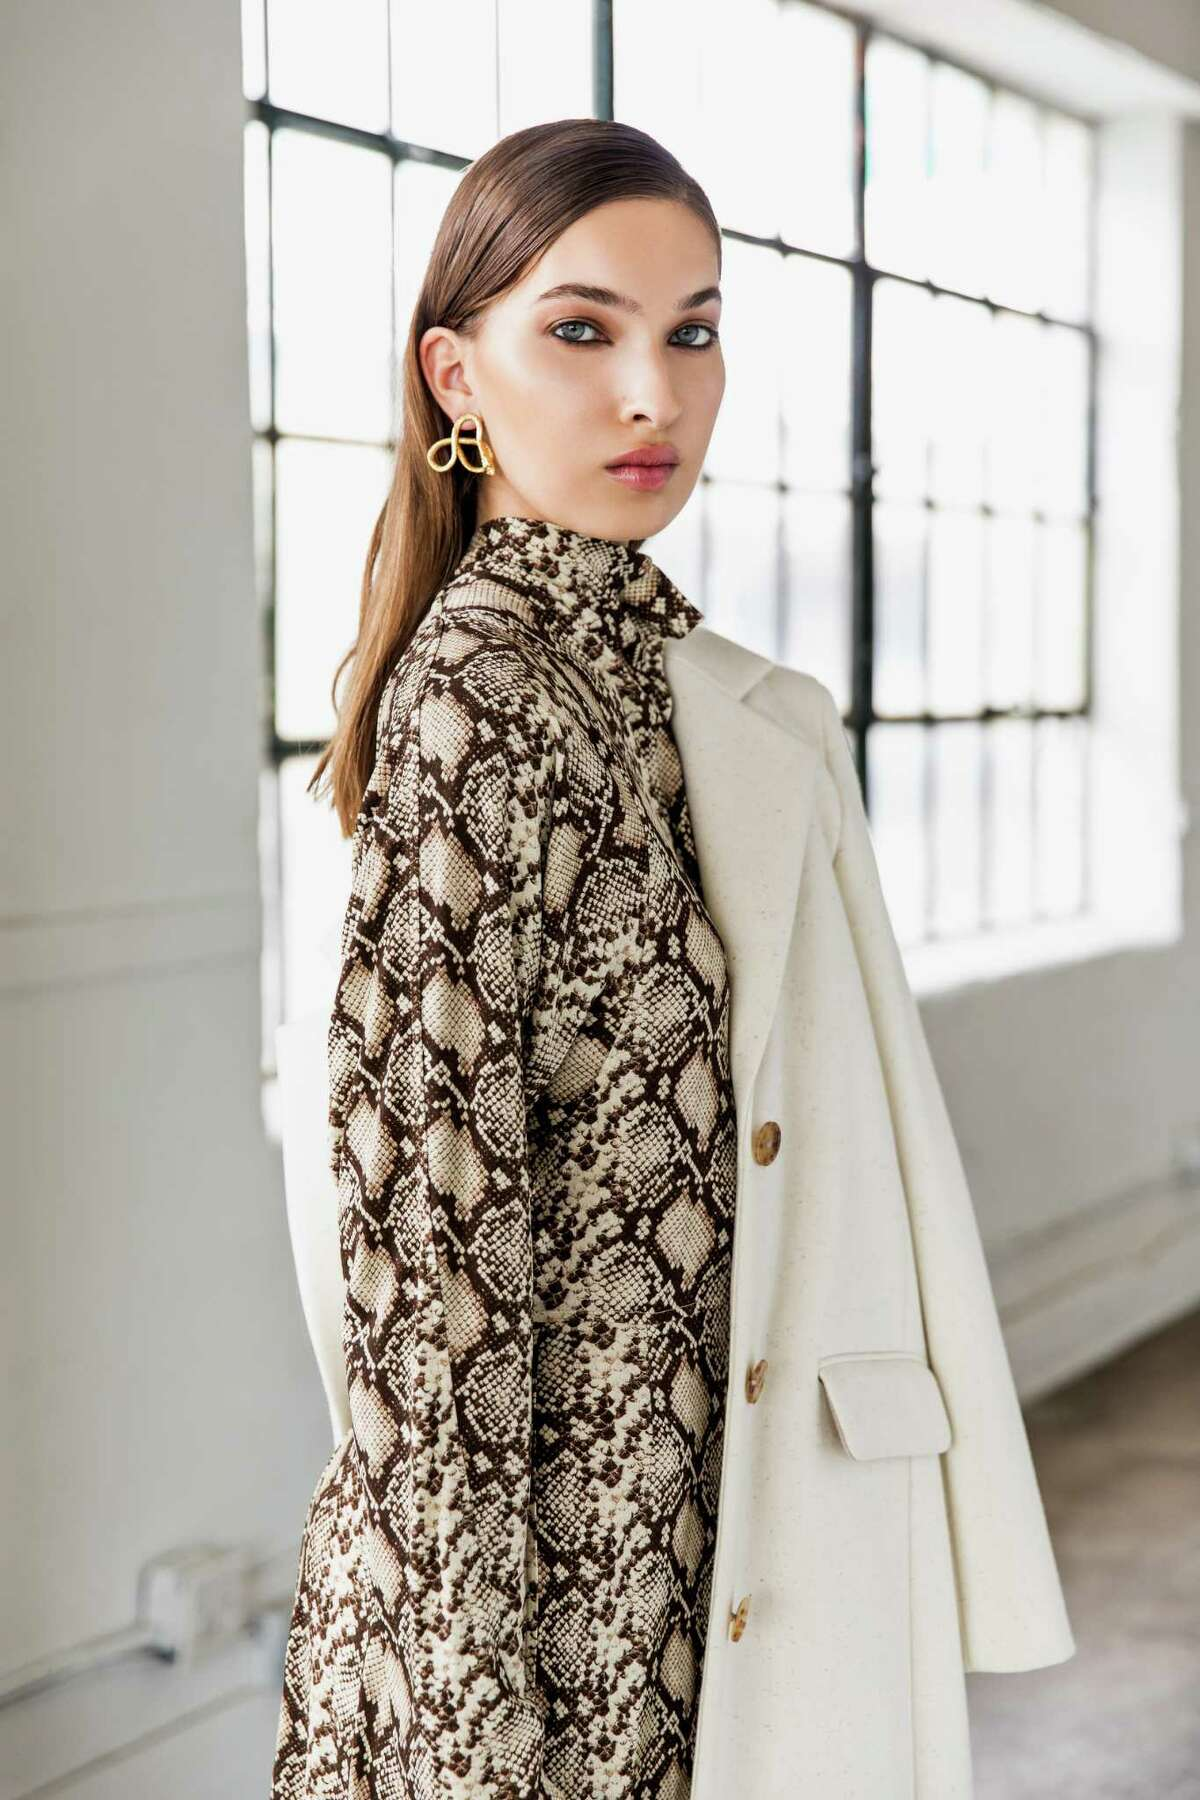 Celine snake print dress, $2,300, and The Row cream coat, $1,990, both at The Webster. Jennifer Behr earrings, $395, at Tootsies.